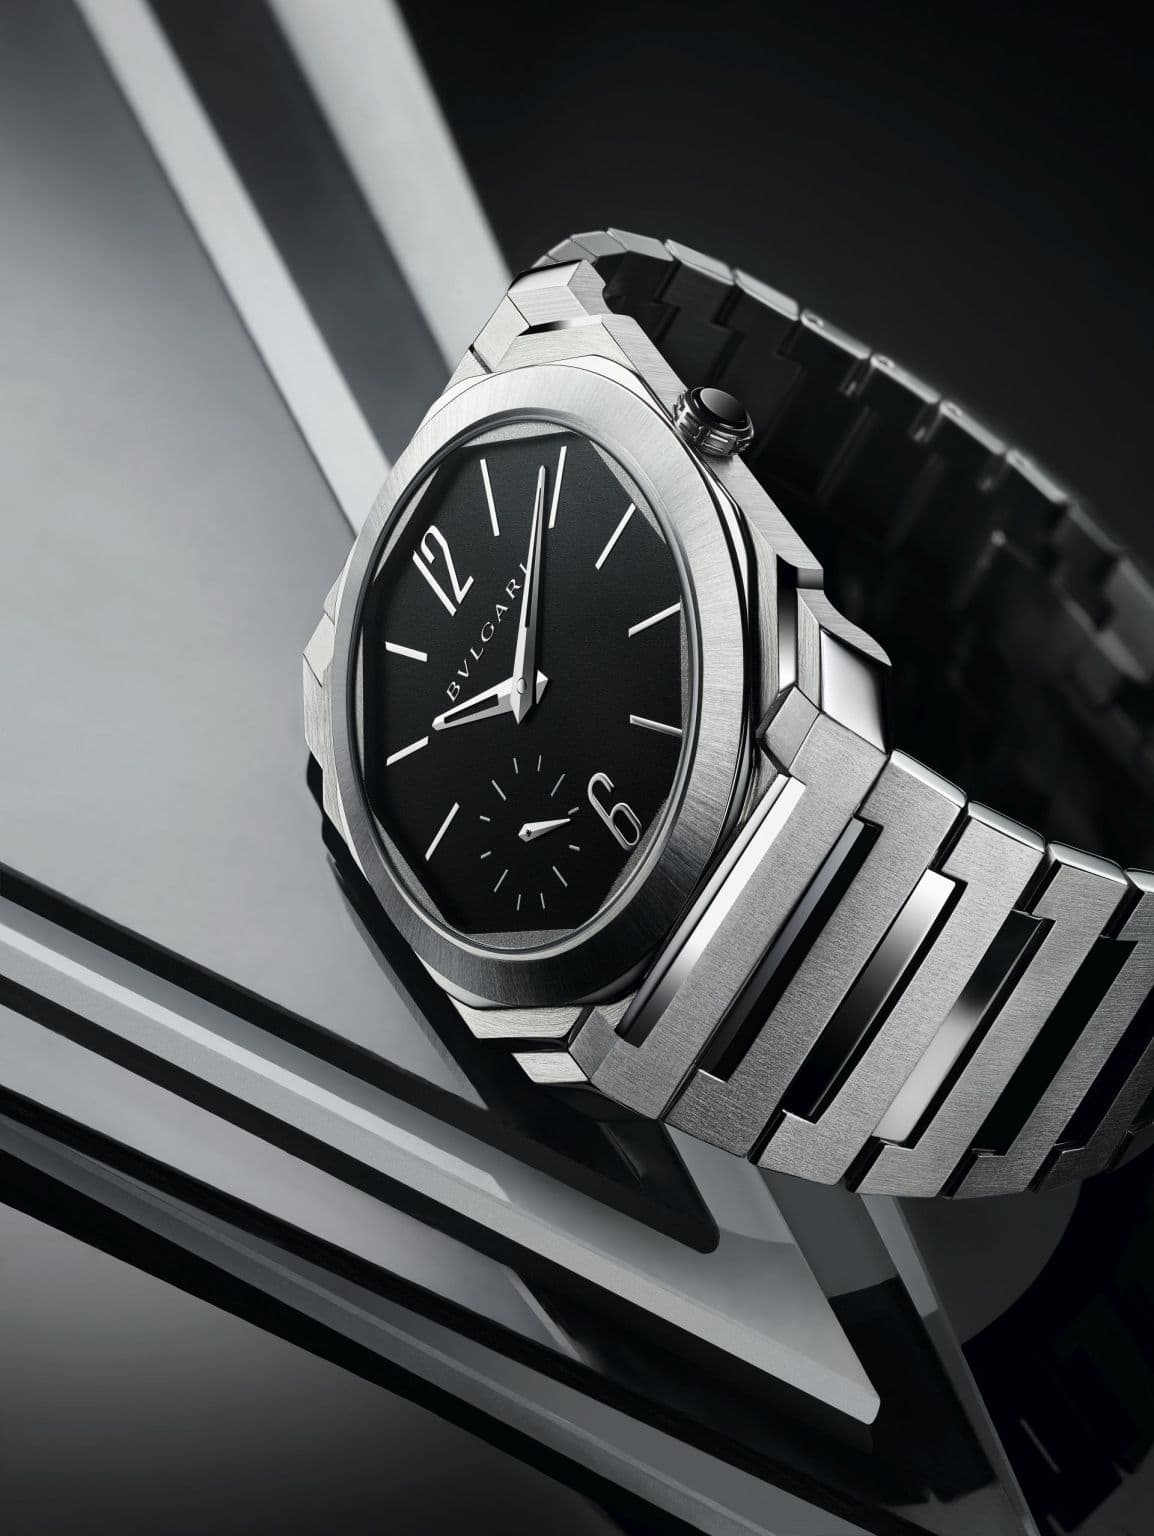 Bvlgari Octo Finissimo Automatic Satin-Polished Steel 100m